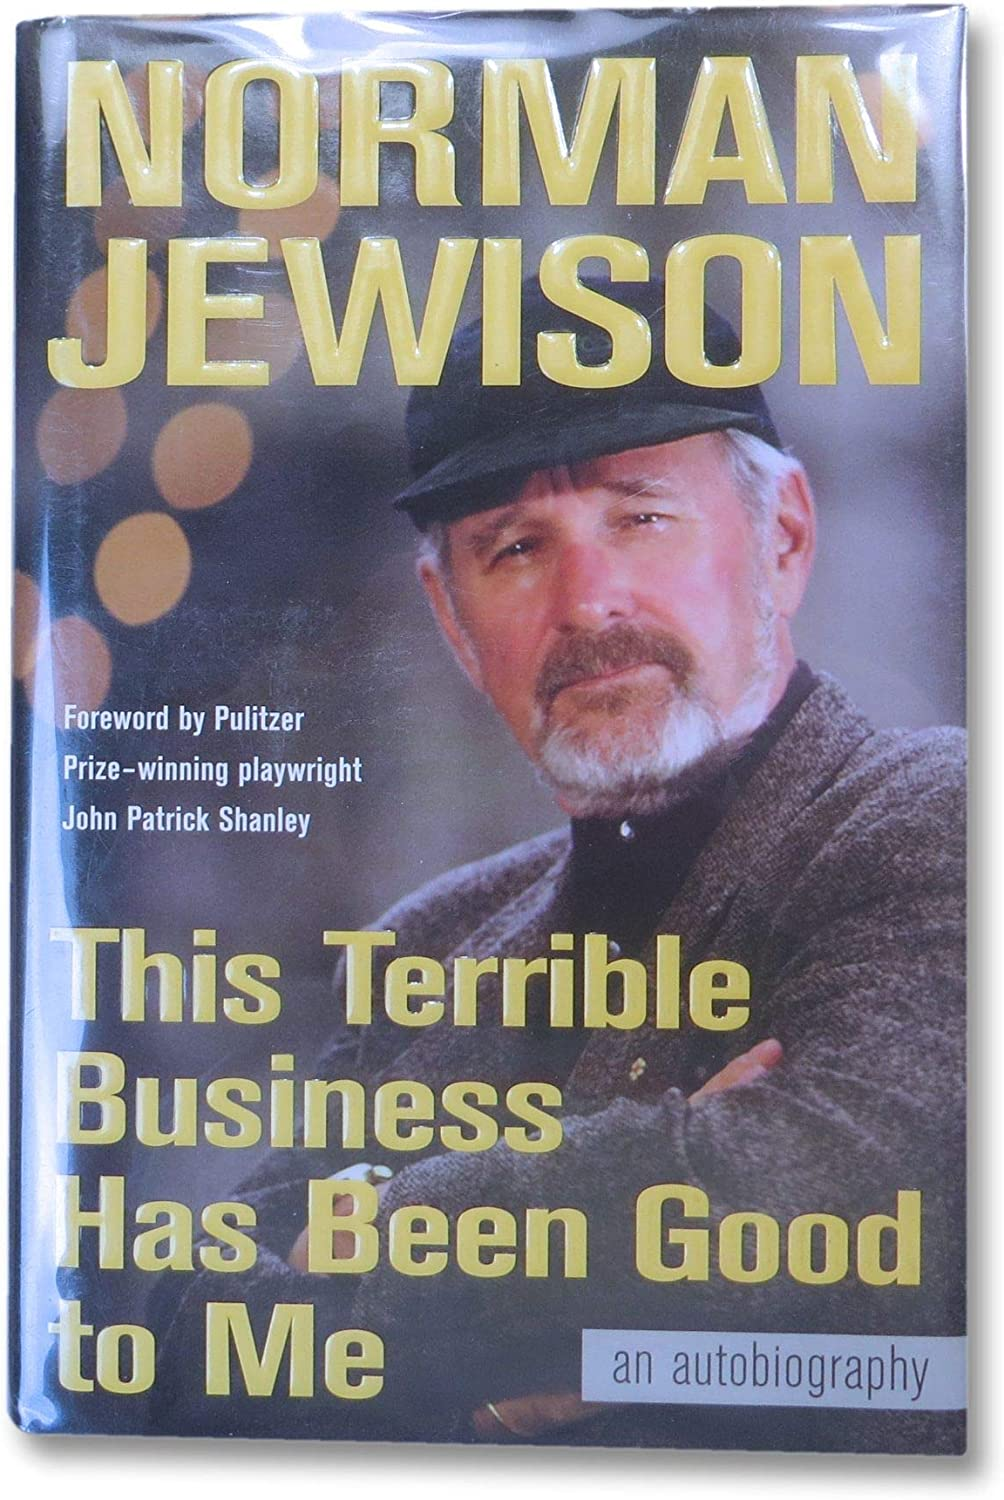 Norman Jewison Autographed Hardcover Book Limited price Quality inspection sale Business Been Has Good